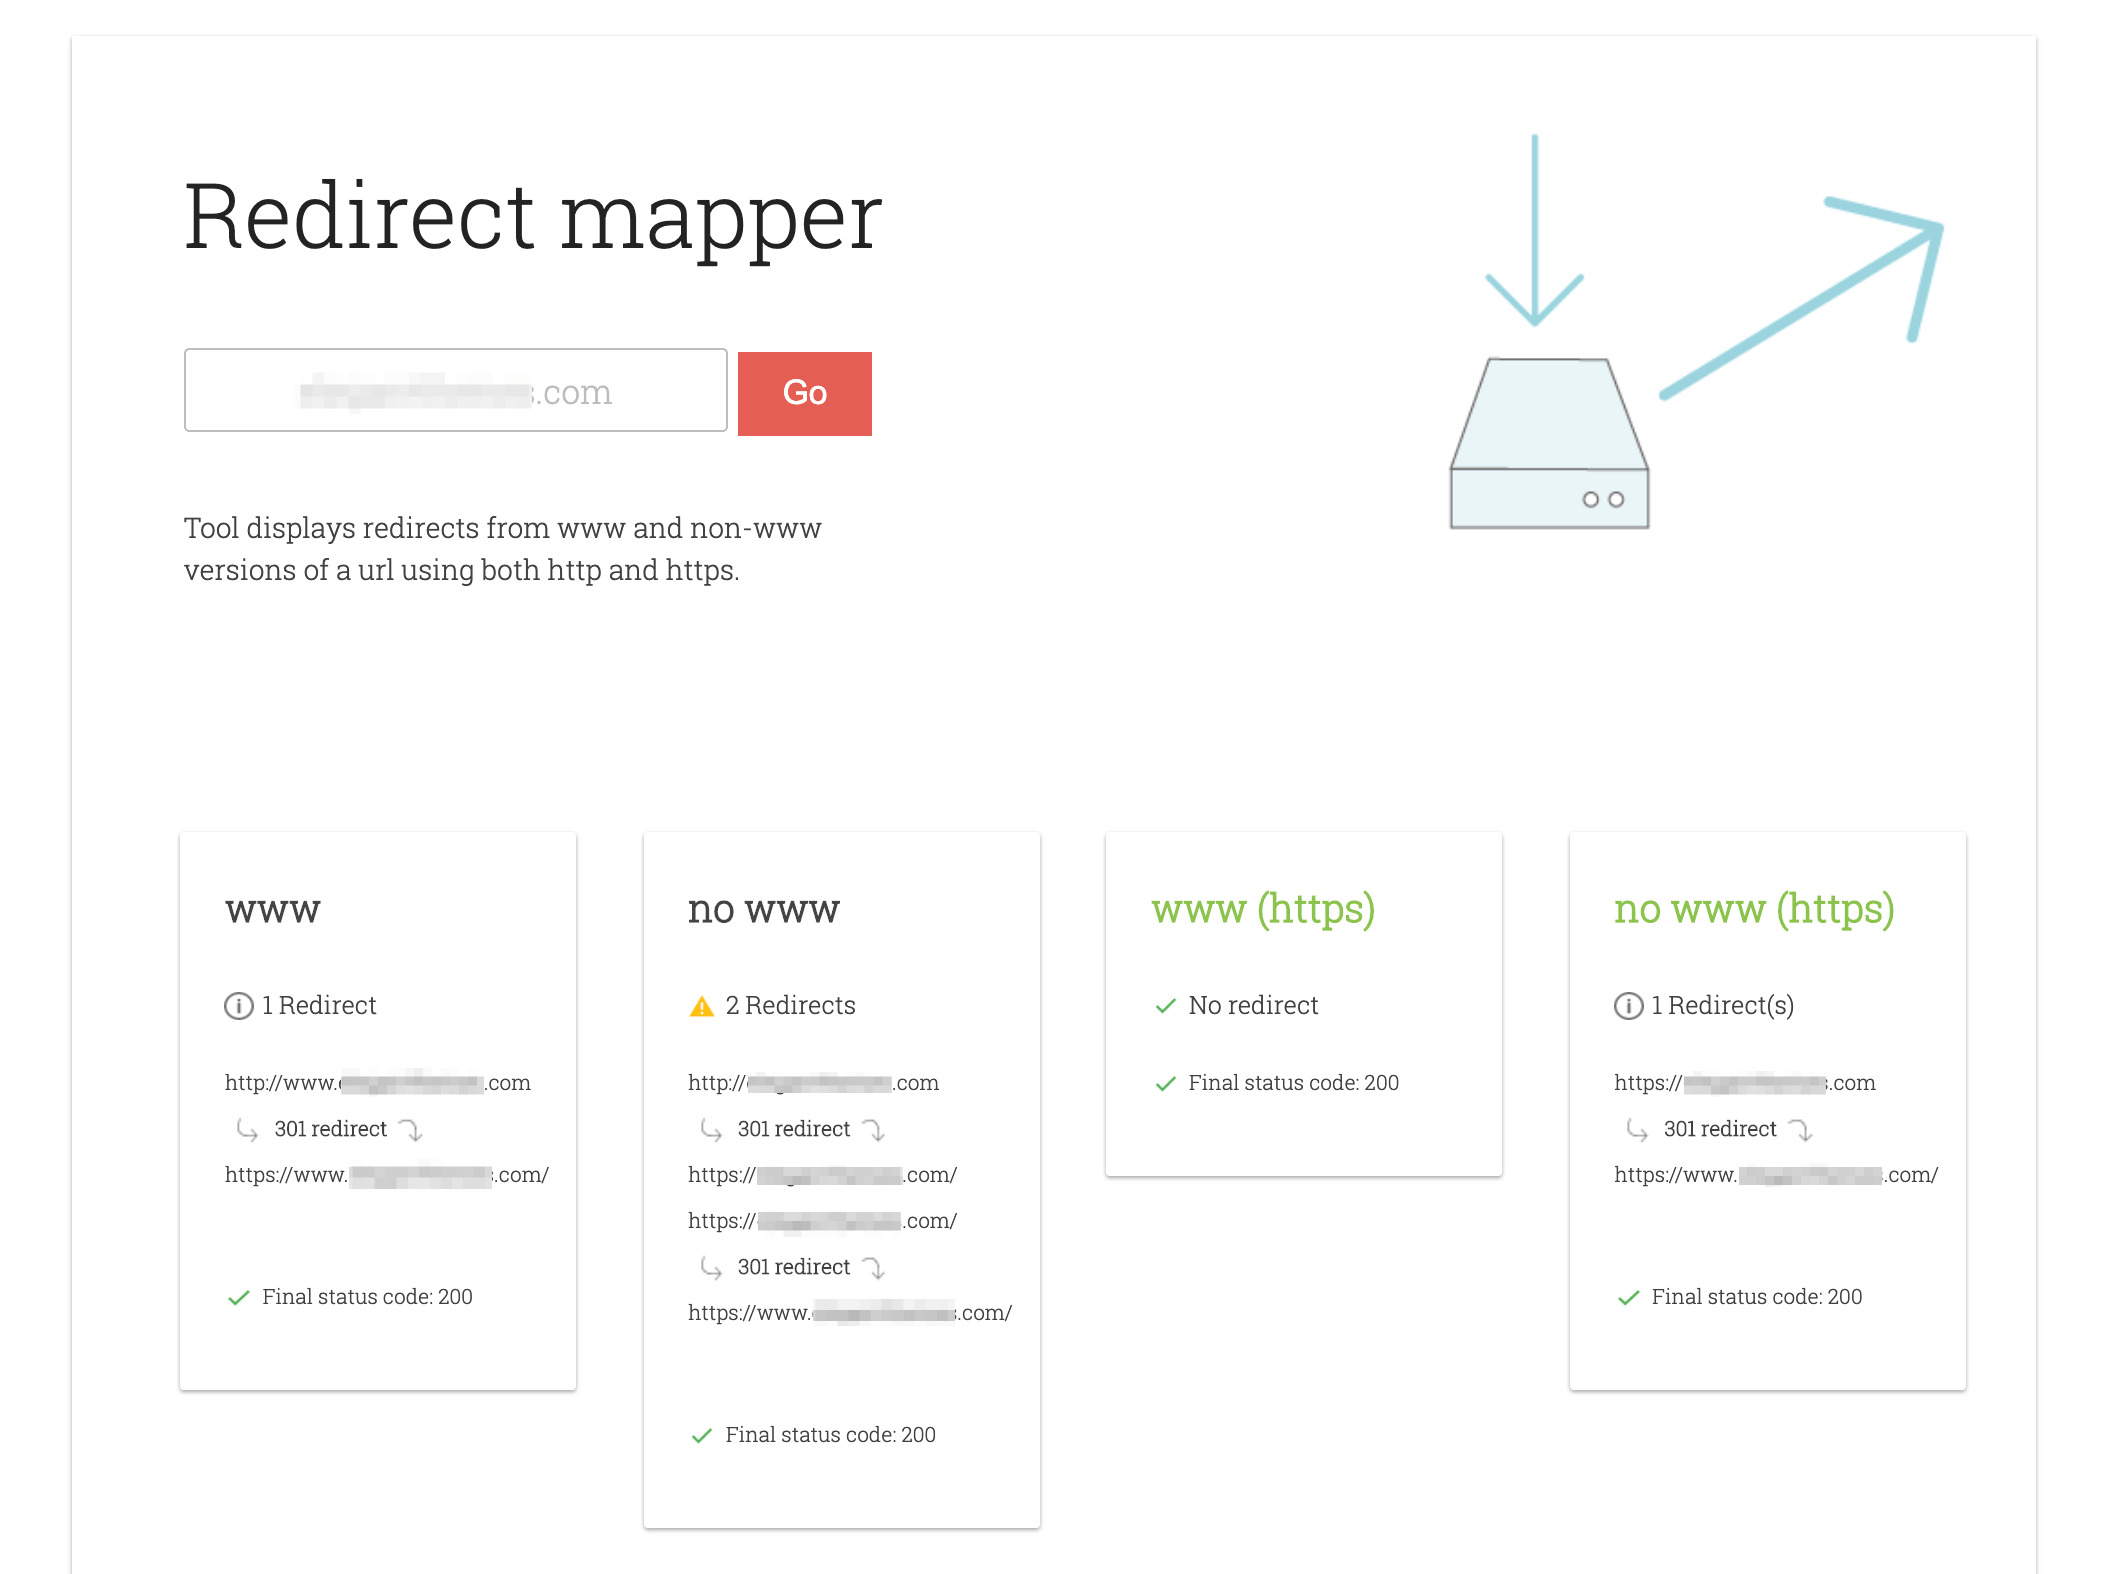 Redirect mapper results.